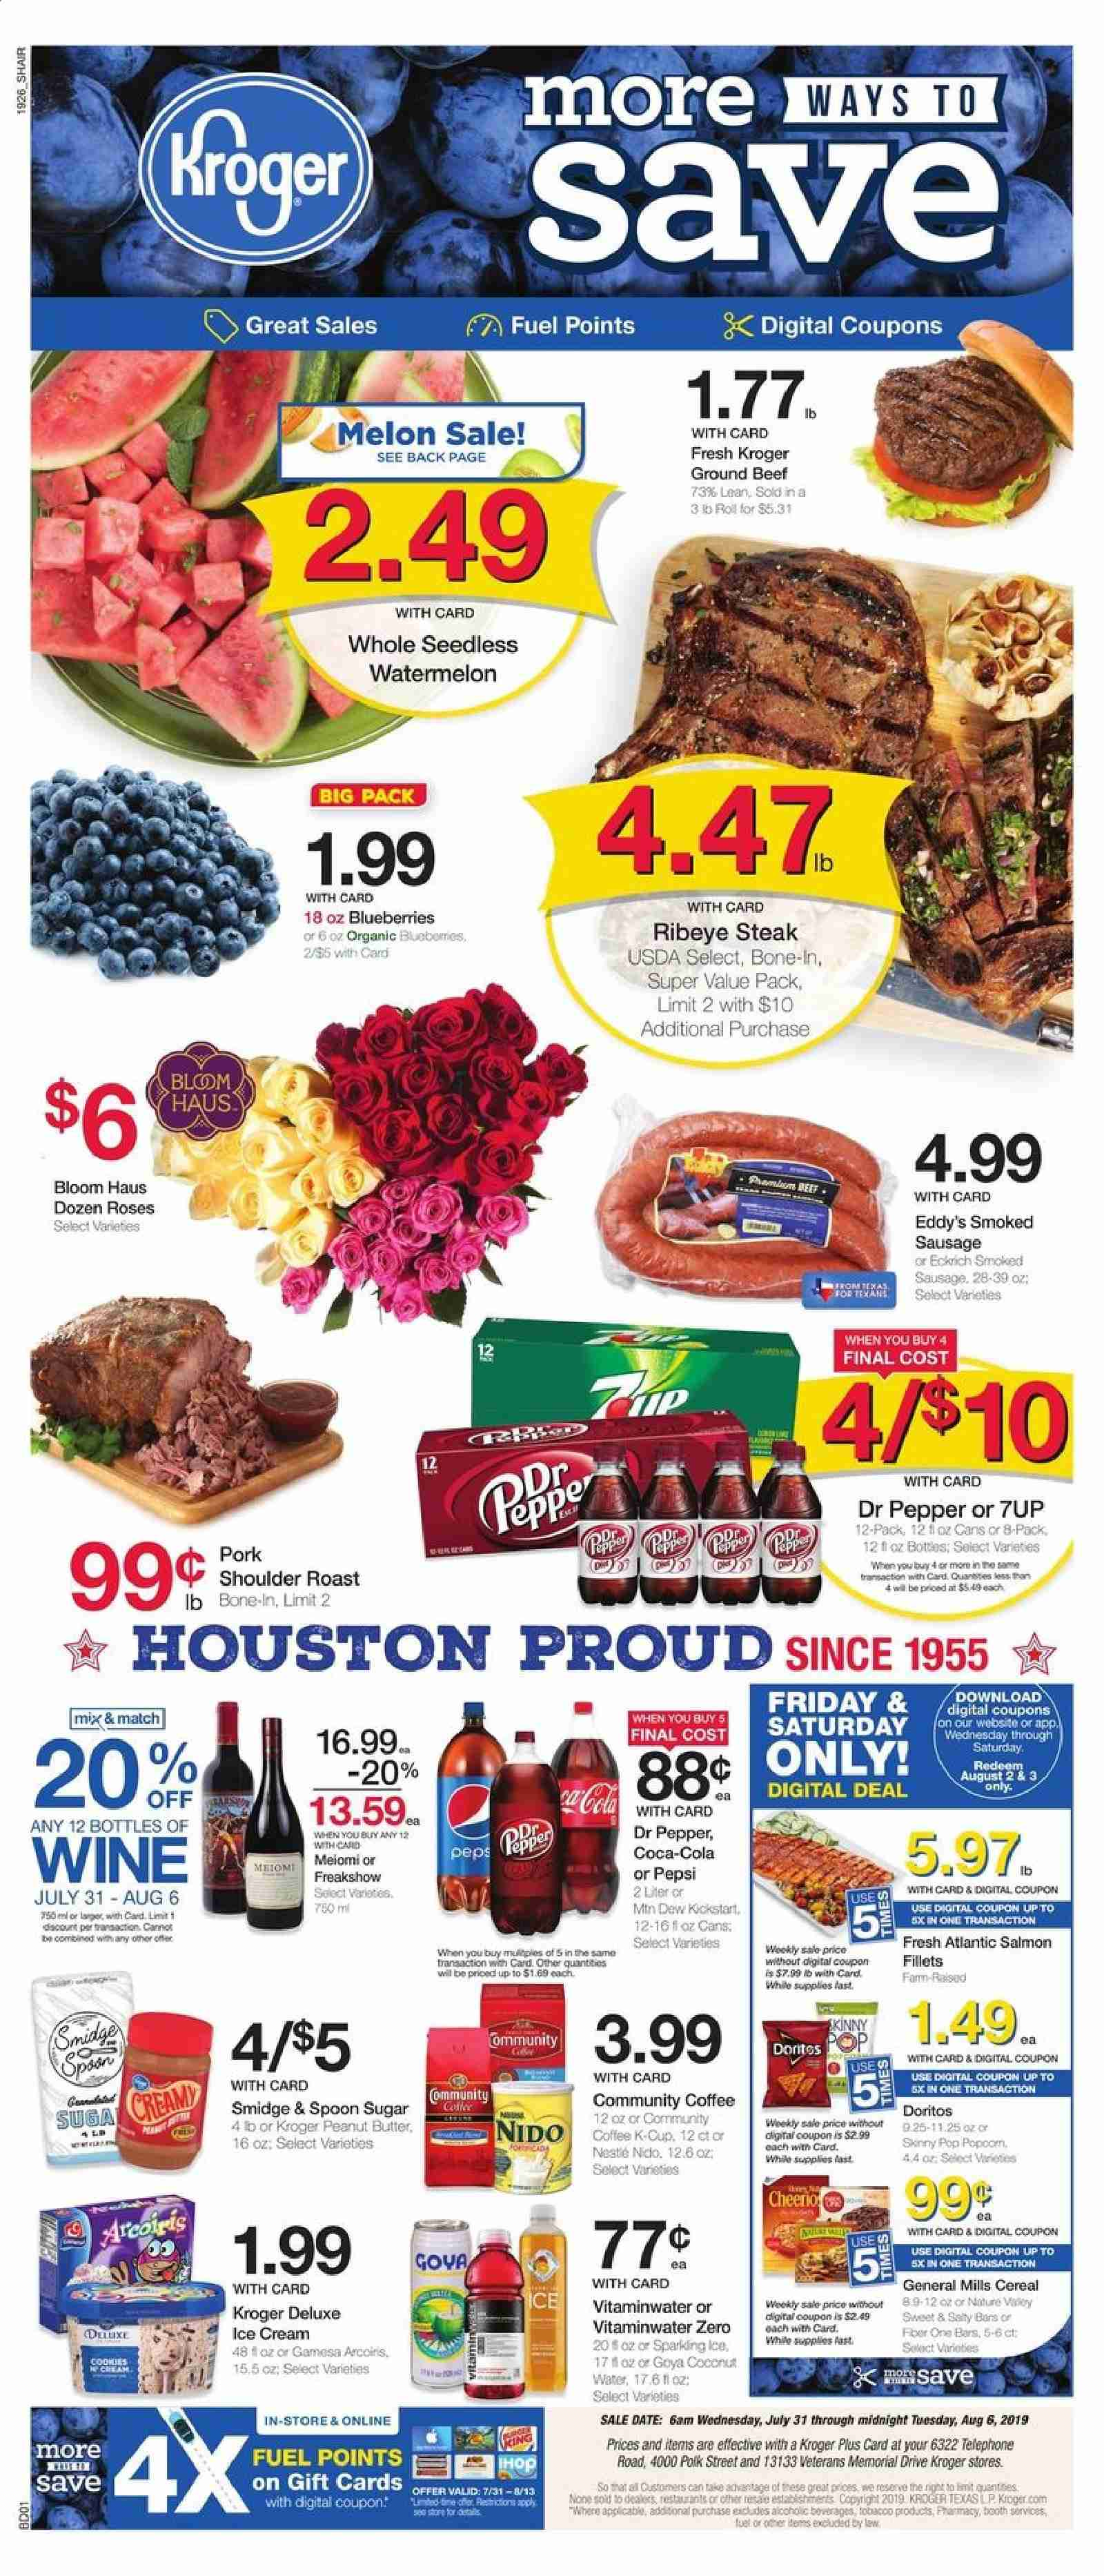 Kroger Flyer - 07.31.2019 - 08.06.2019 - Sales products - beef meat, blueberries, butter, cereals, coca-cola, coffee, cookies, cup, doritos, fuel, ground beef, salmon, sausage, smoked sausage, spoon, sugar, watermelon, ice cream, polk, pork meat, peanut butter, pepsi, organic, steak, coconut, pepper, roses, melon, cereal, wine, dr. pepper, roast, cream. Page 1.